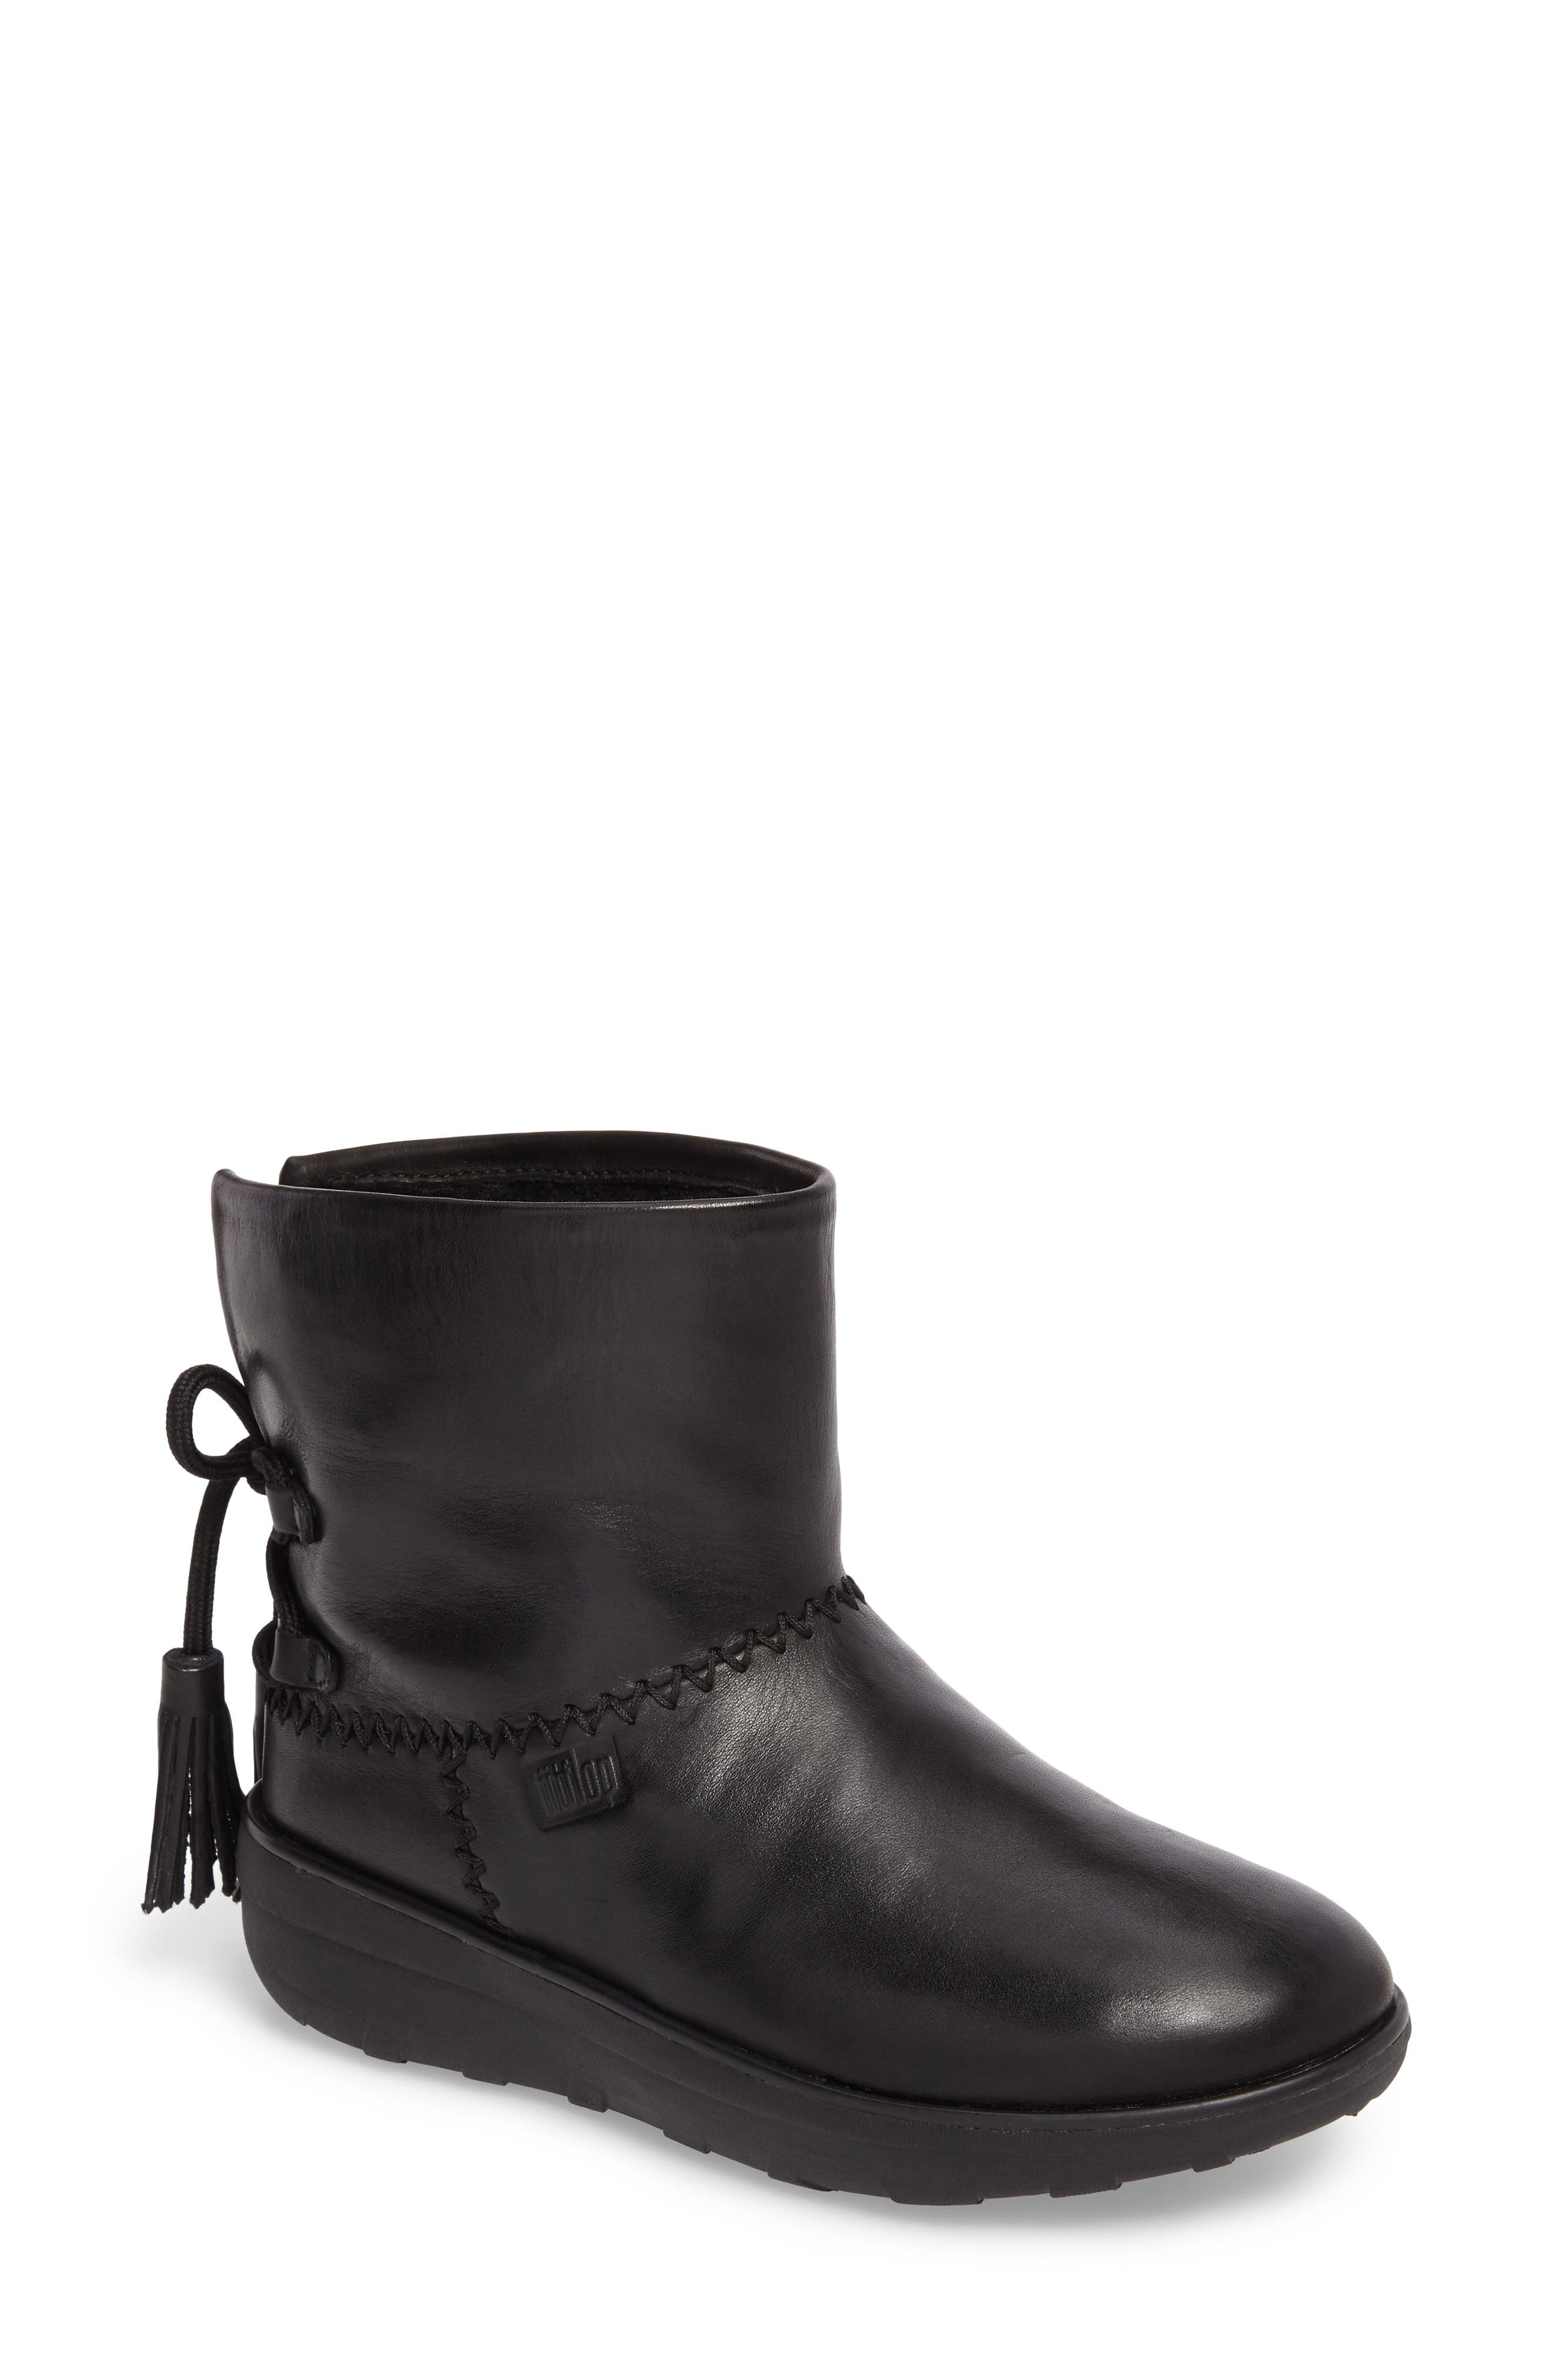 Alternate Image 1 Selected - Fitflop Mukluk Shorty II Boot with Genuine Shearling Lining (Women)